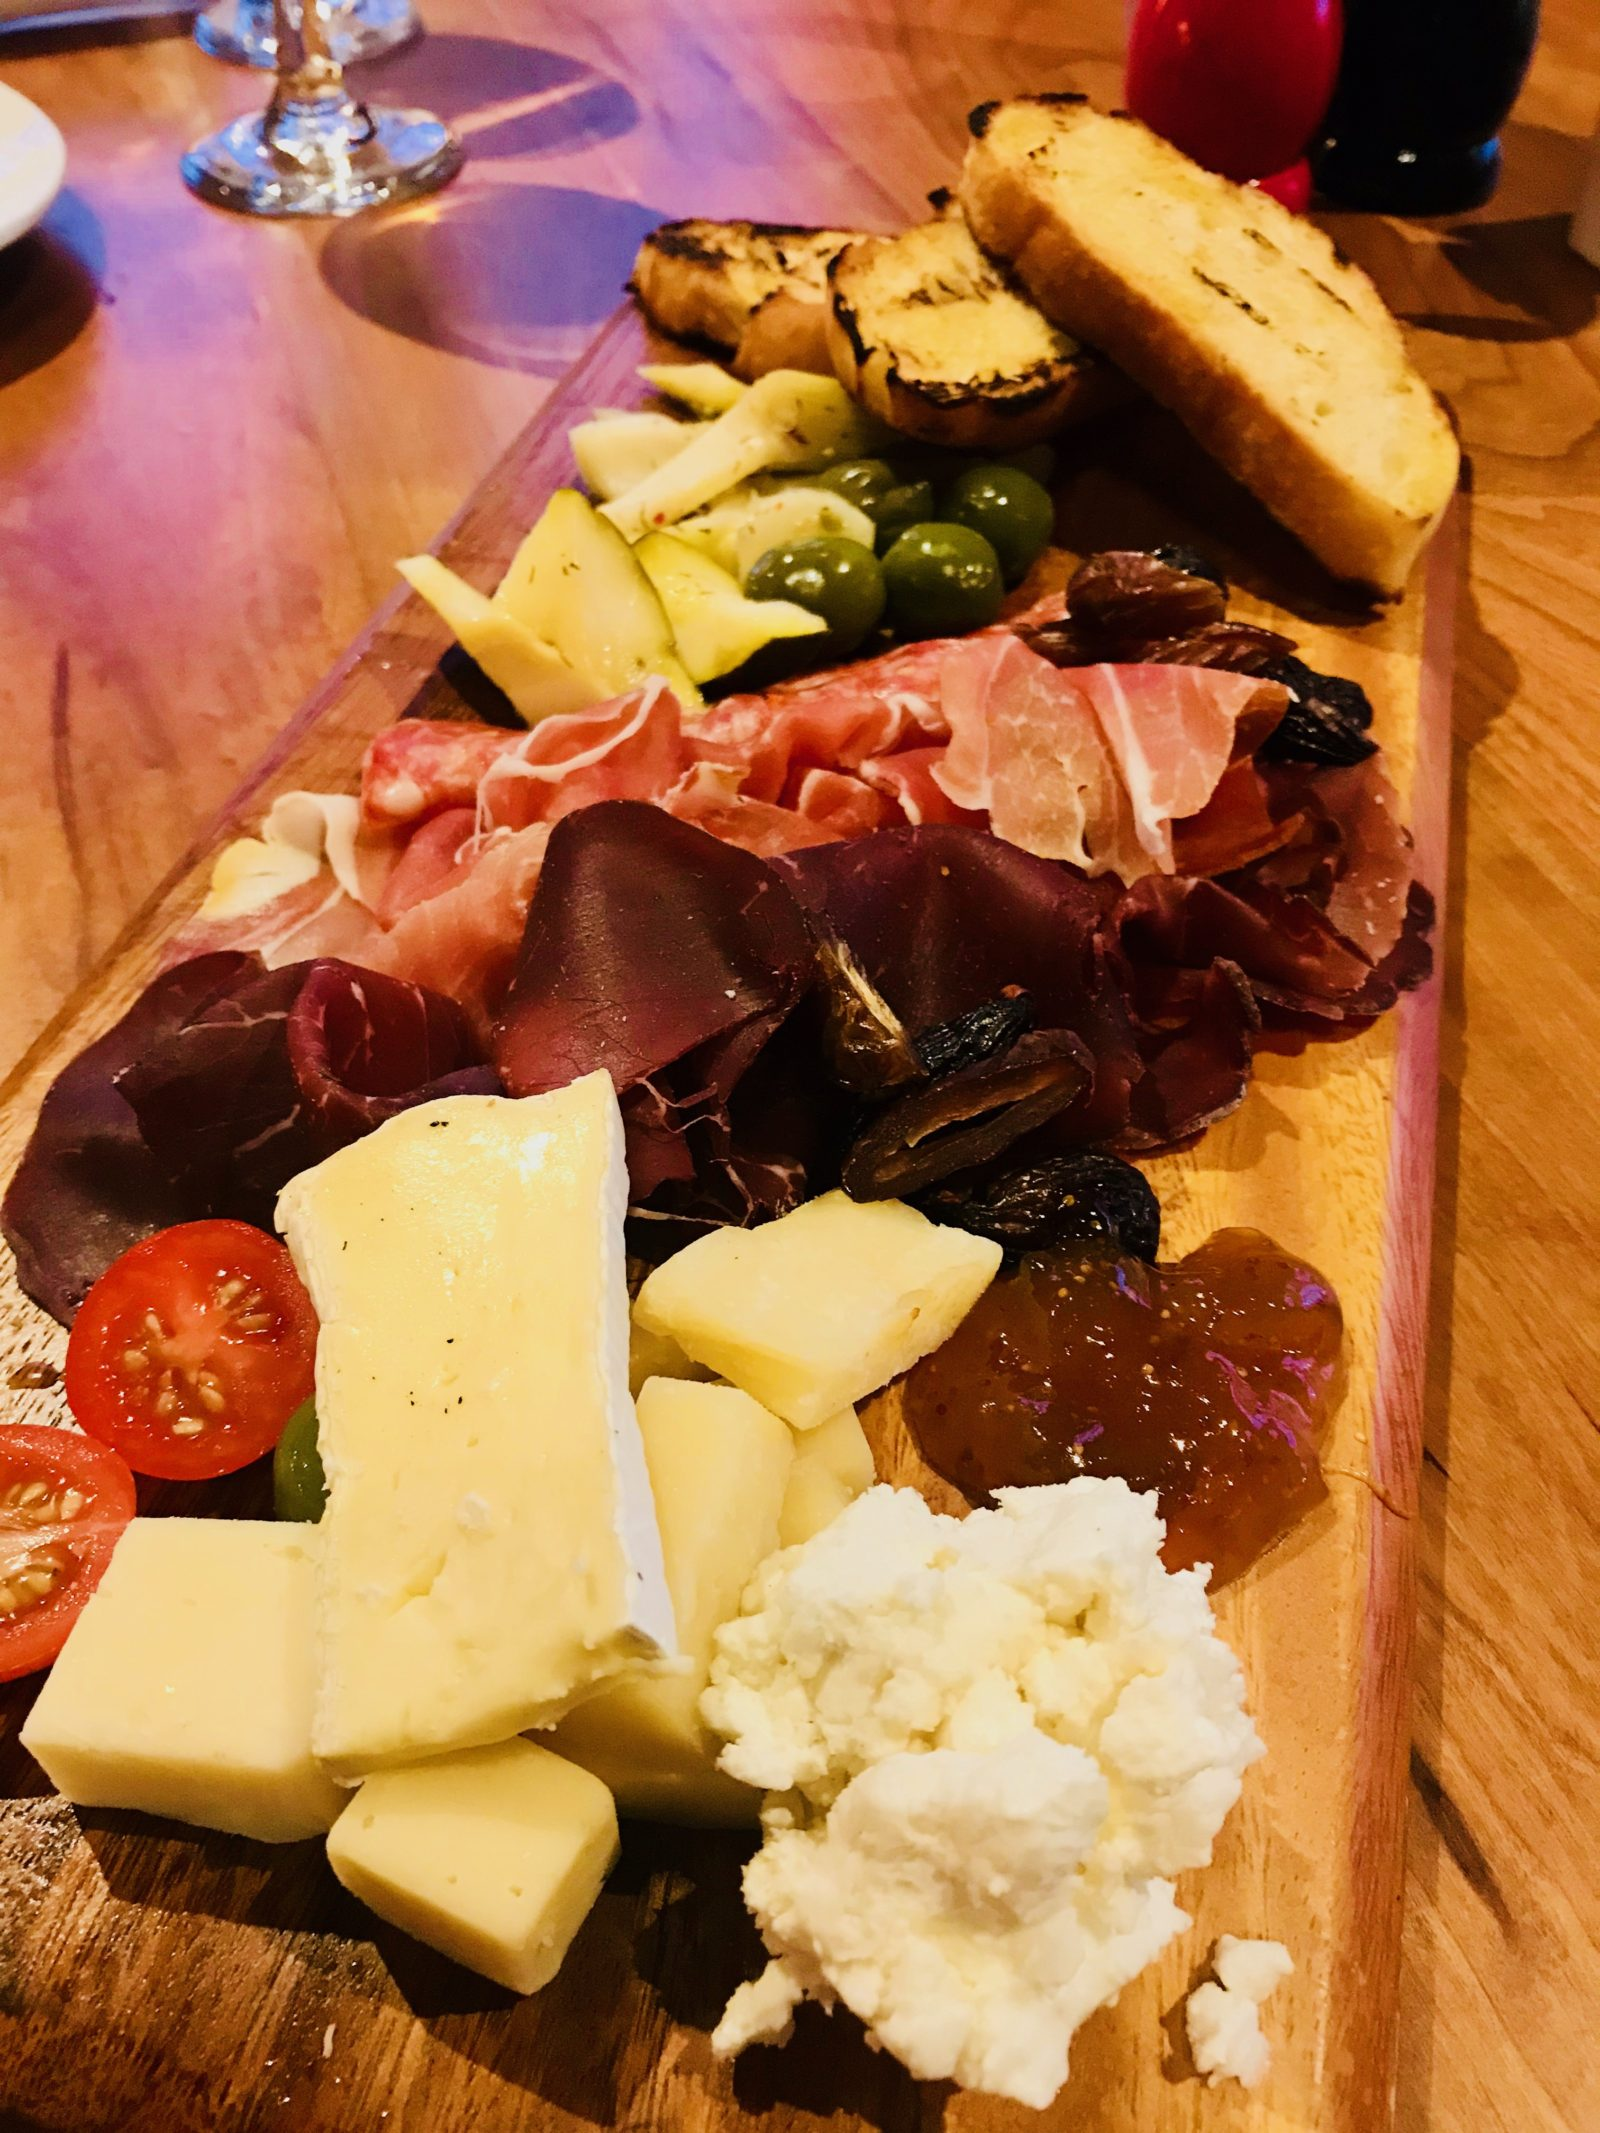 Pick of the Week - The Sicilian Butcher - Cured Meat and Cheese board